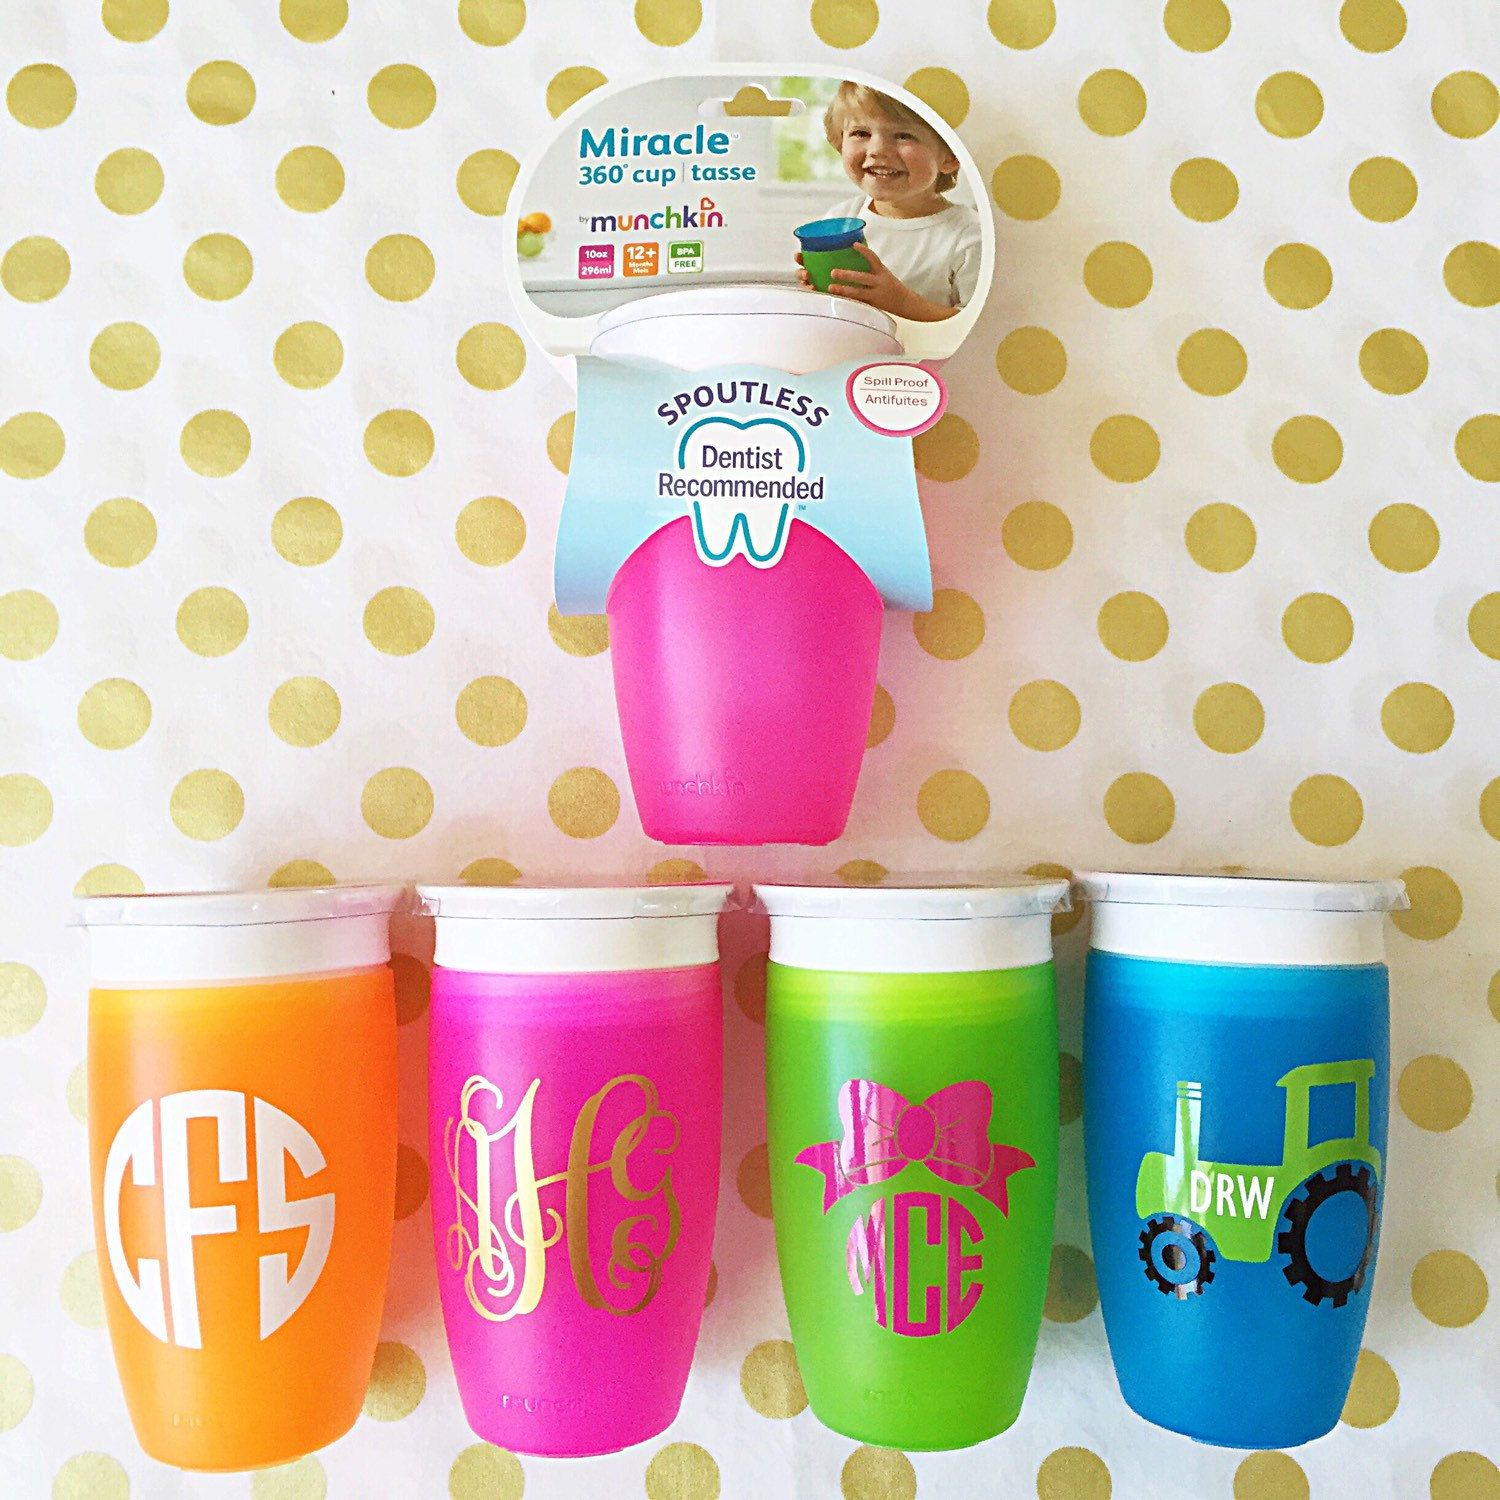 Toddler Baby Sippy Cup Monogram Initials Personalized By Shopbpink With Images Vinyl Gifts Baby Monogram Baby Sippy Cup